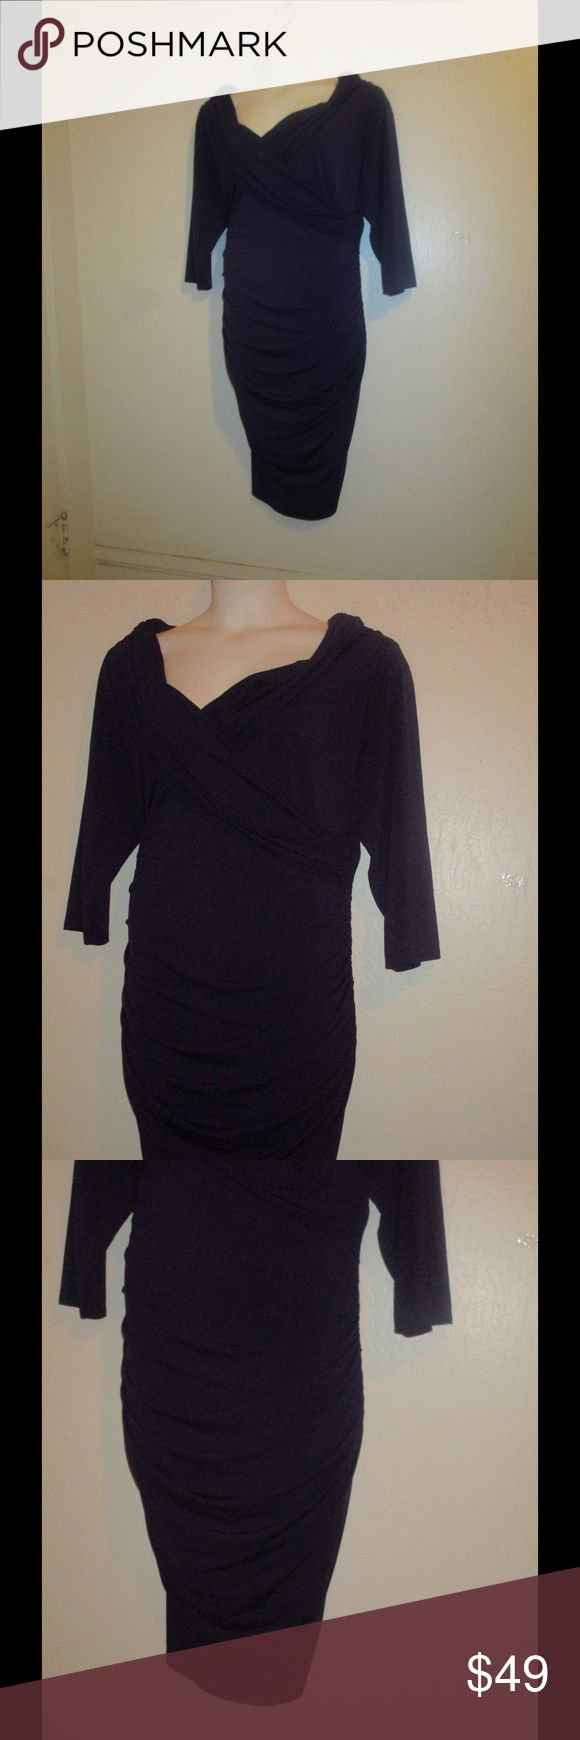 PURPLE BODYCON DRESS BY LANE BRYANT * 24 * BRAND NEW;  PURPLE BODYCON DRESS WITH CONTROL TECH IN SIZE 24, THIS DRESS ENHANCES ALL YOUR CURVES. PLEASE FEEL FREE TO ASK ANY QUESTIONS YOU MAY HAVE AND I WILL REPLY WITHIN 48 HOURS. PLEASE NOTE: INTERNATIONAL SHIPPING IS NOT AVAILABLE. PLEASE LOOK AT MY CLOSET TO BUNDLE THIS GREAT DEAL. THANKS FOR LOOKING! Lane Bryant Dresses Midi